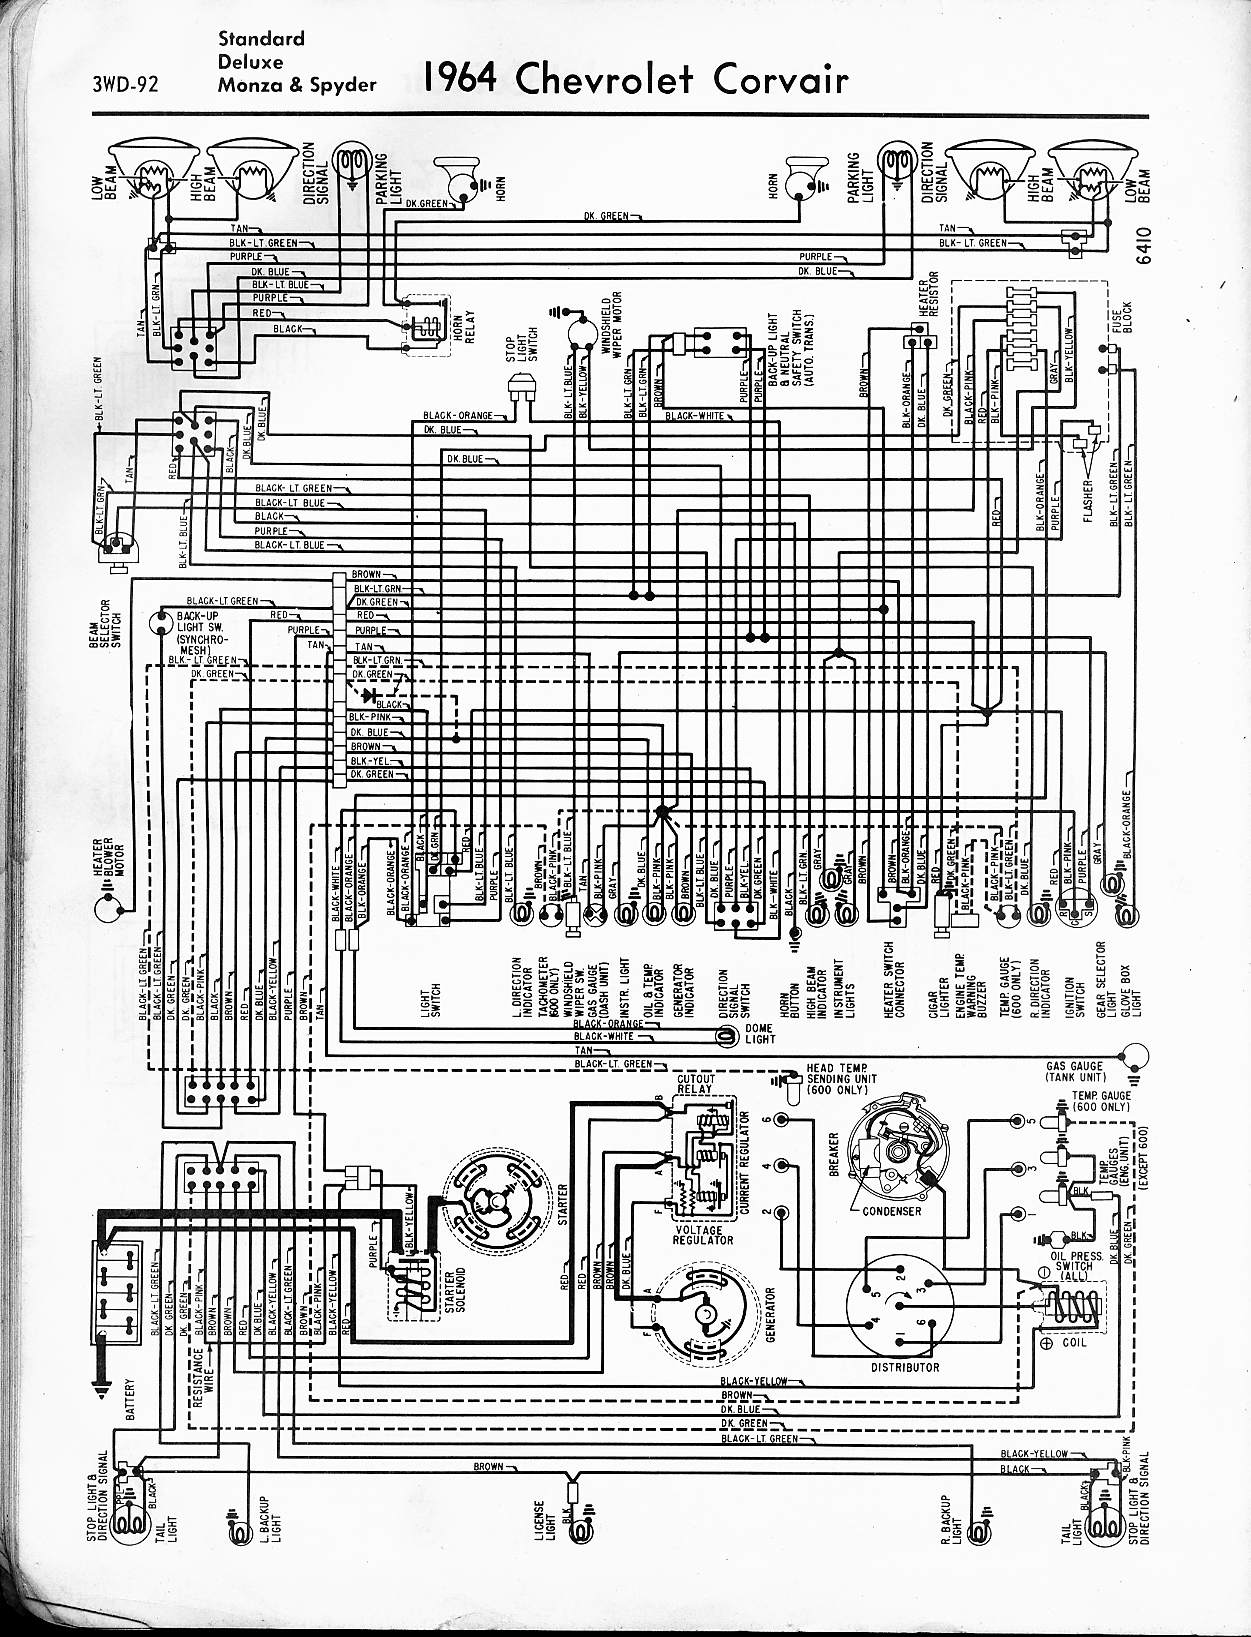 57 65 chevy wiring diagrams 1964 corvair std deluxe monza spyder